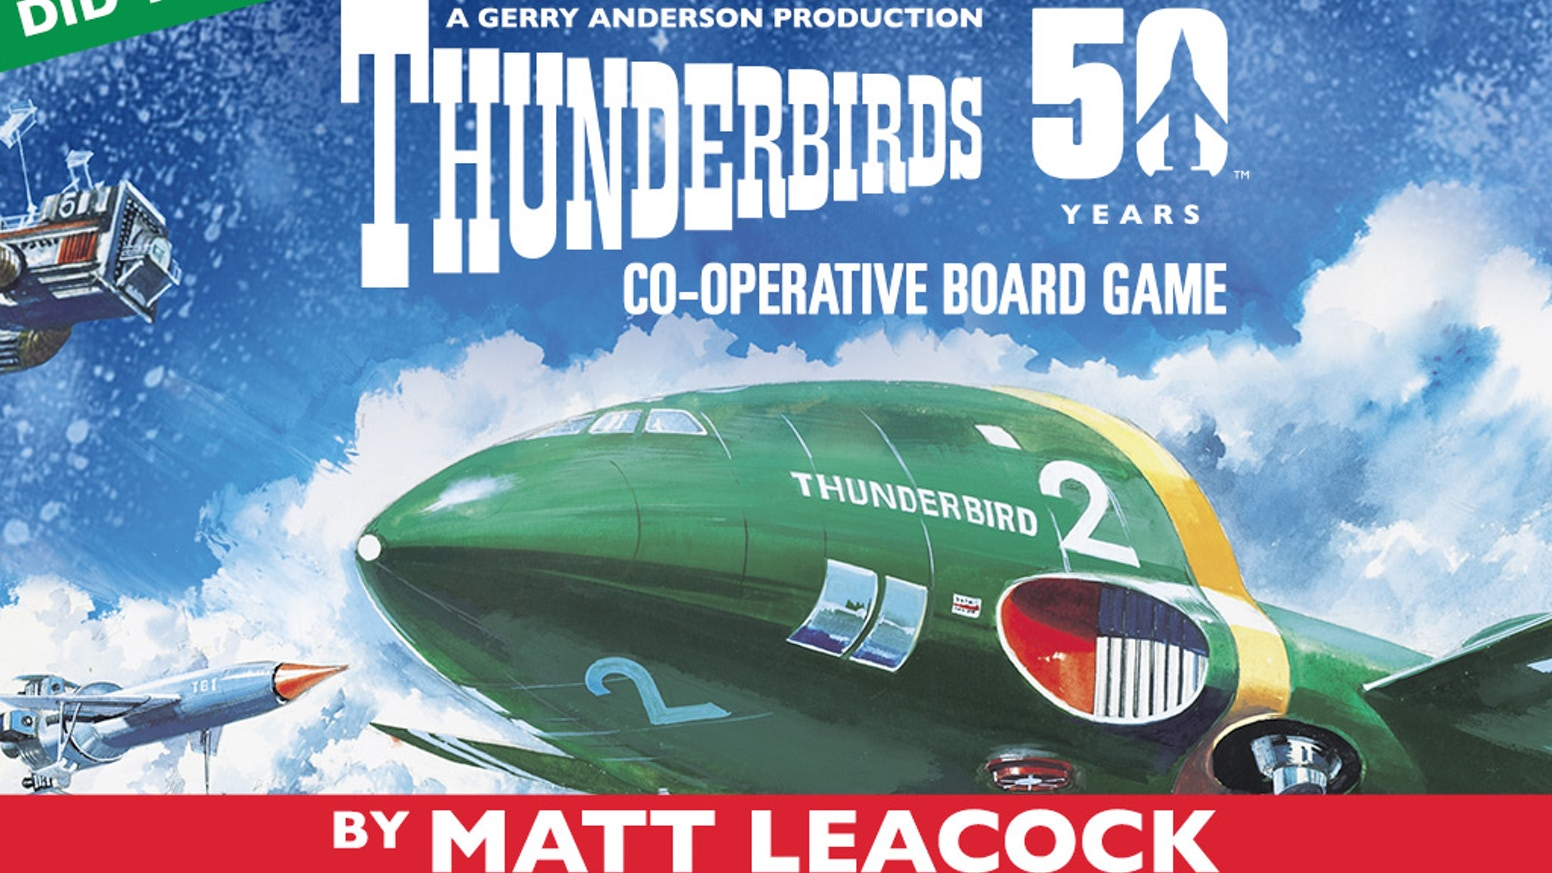 Join International Rescue, avert disasters, and foil the Hood's evil scheme in THUNDERBIRDS, the new co-op game from Matt Leacock